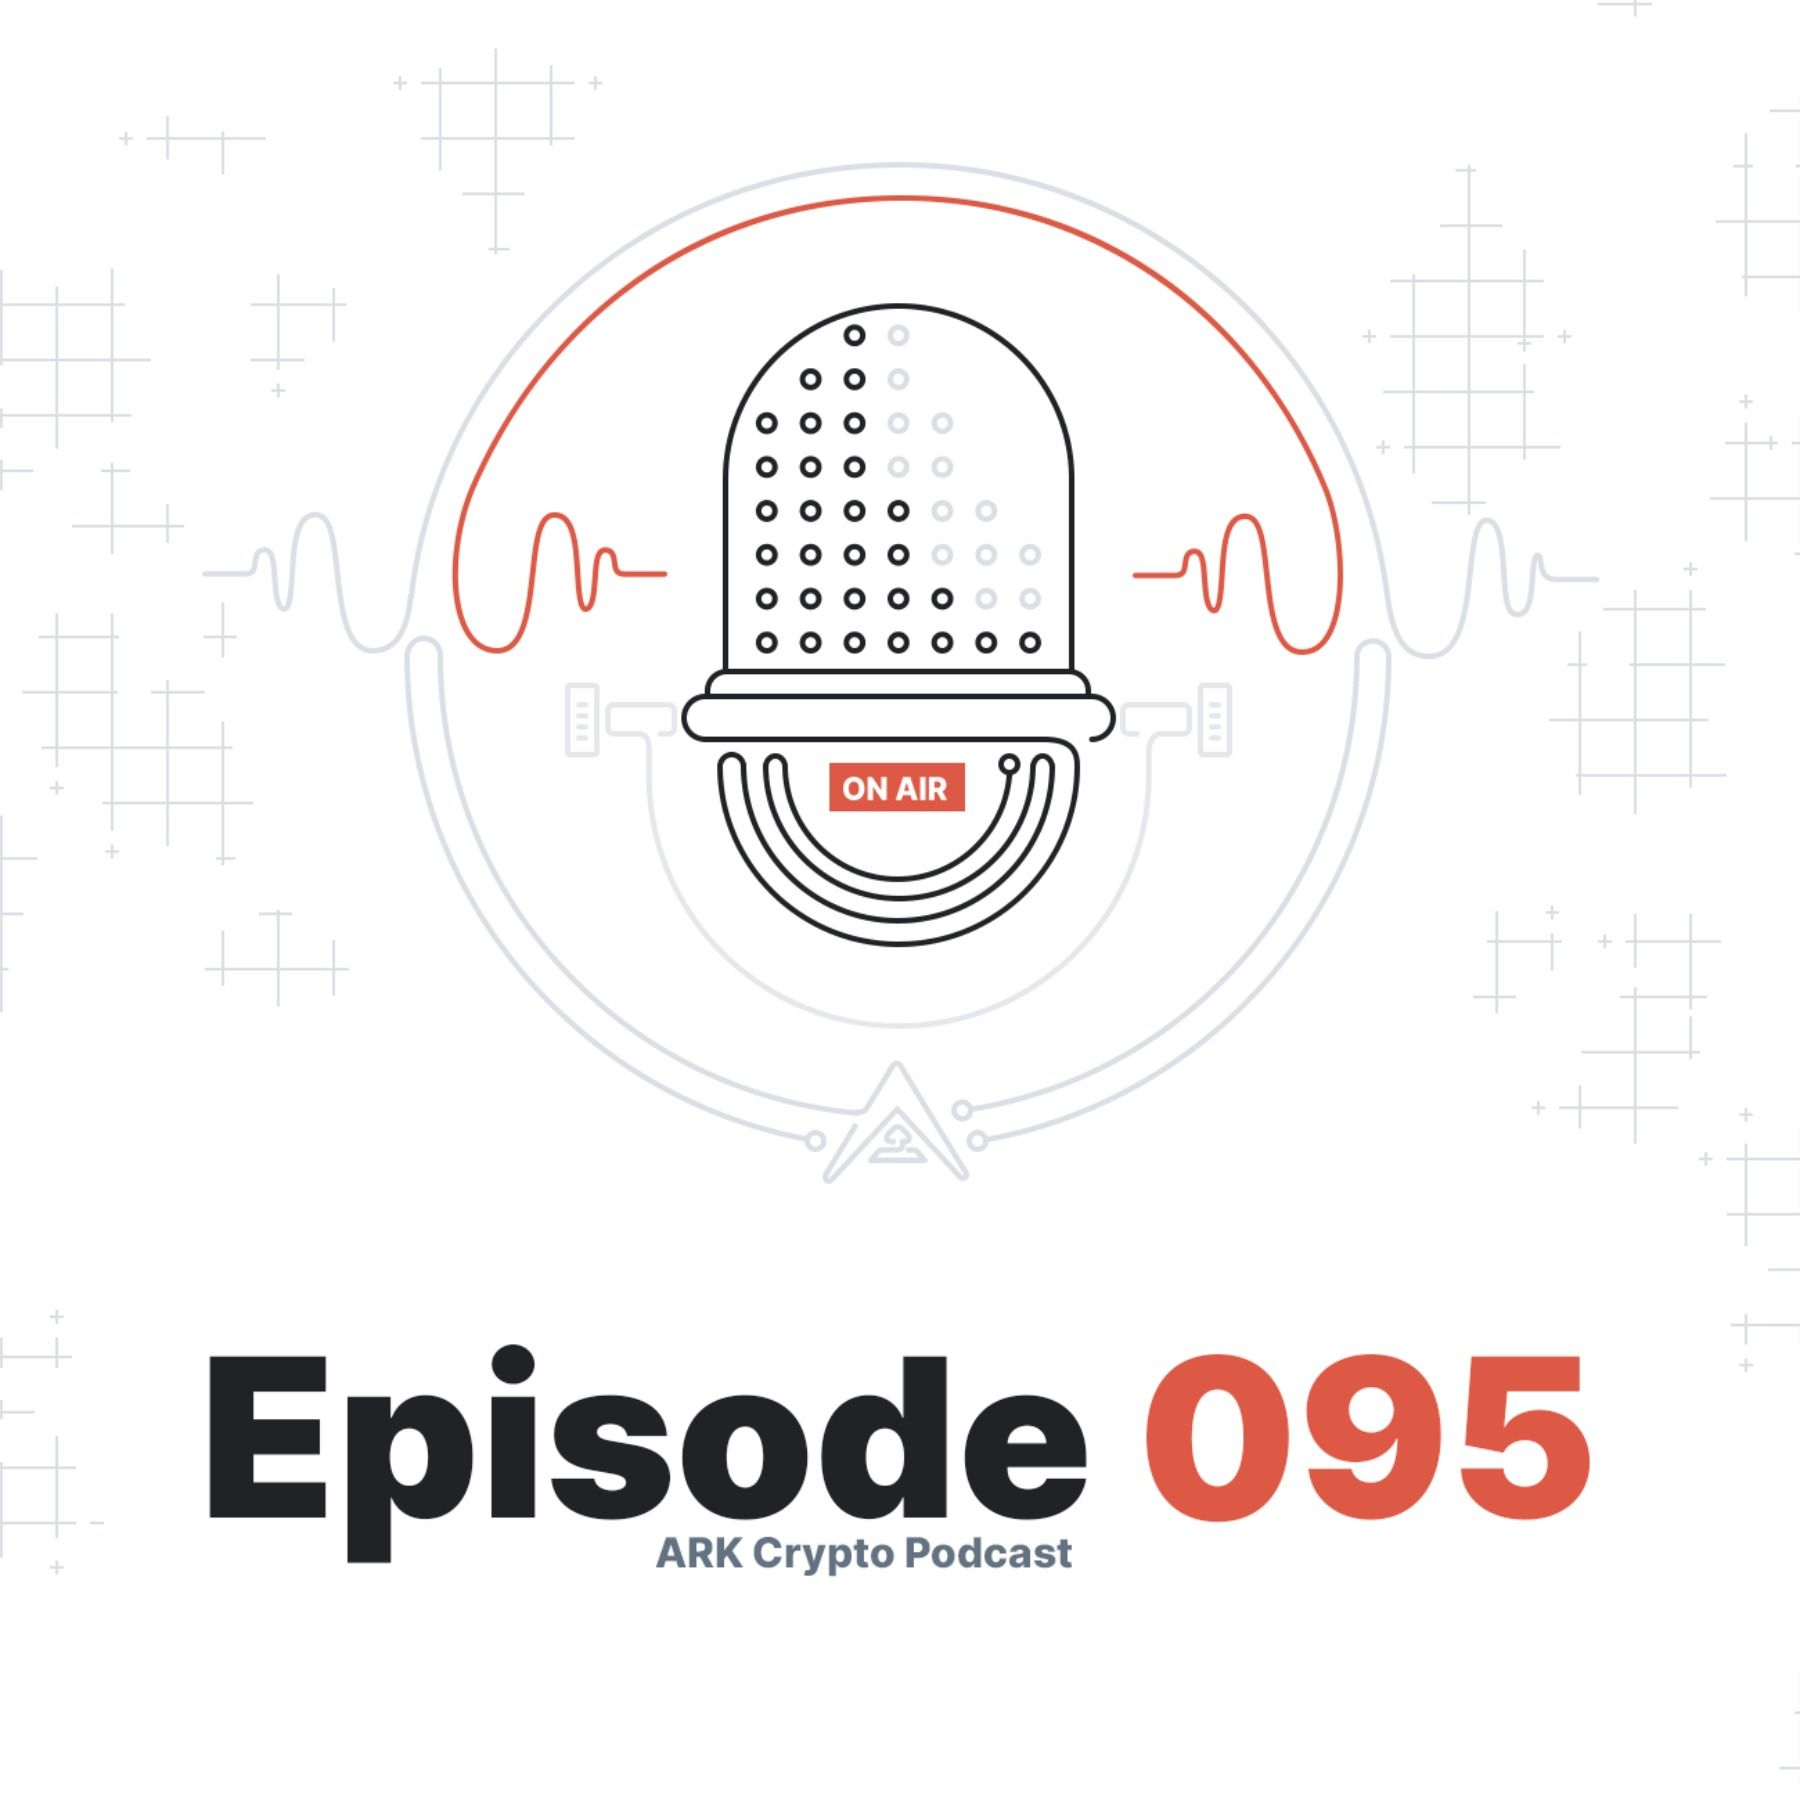 Comparing the Approaches of ARK and Ethereum - ARK Crypto Podcast #095